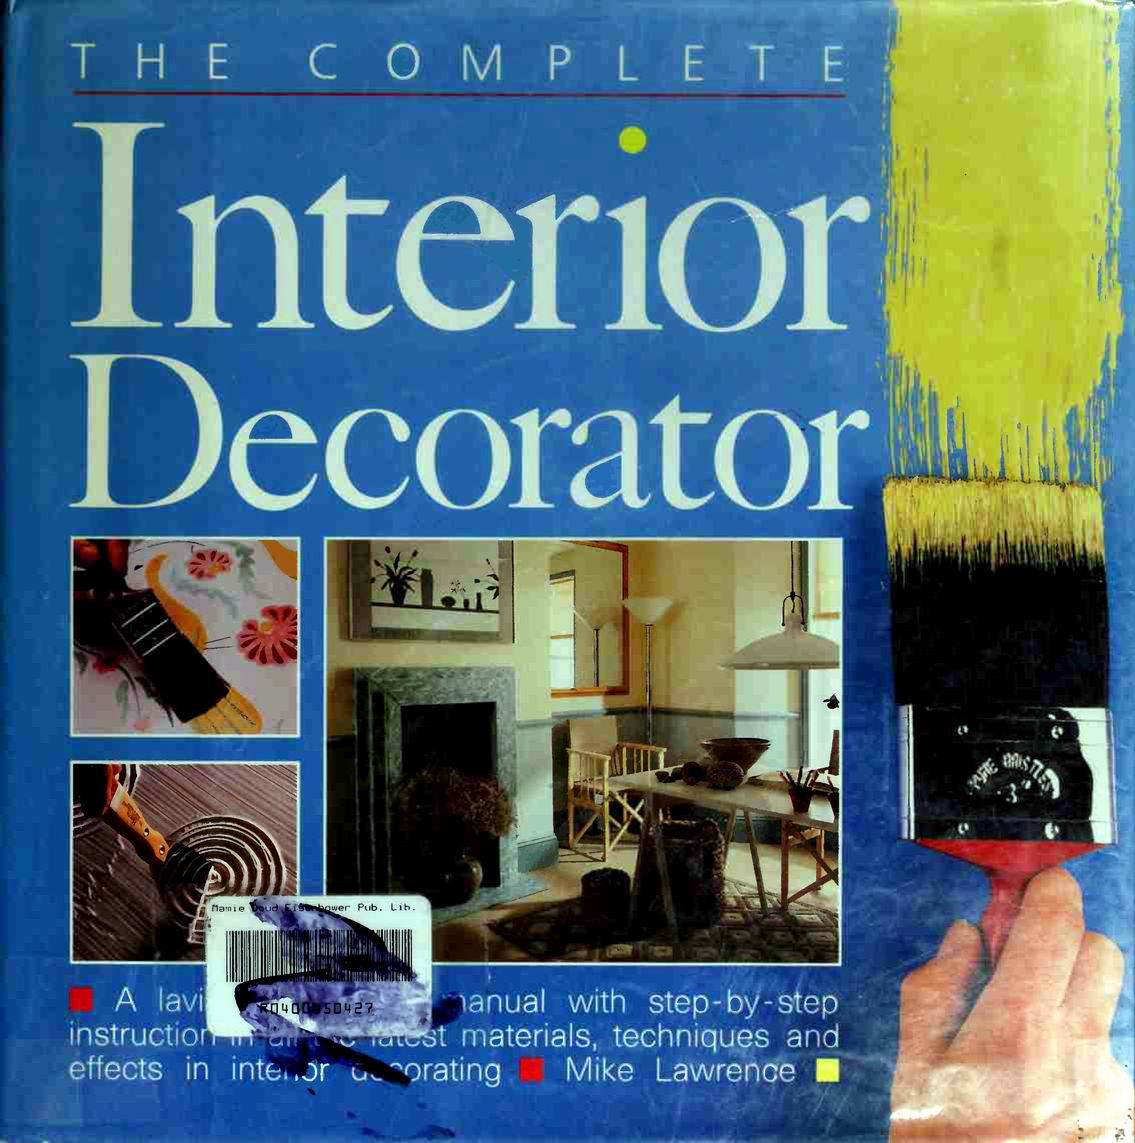 Download the complete interior decorator softarchive for Compleet interieur